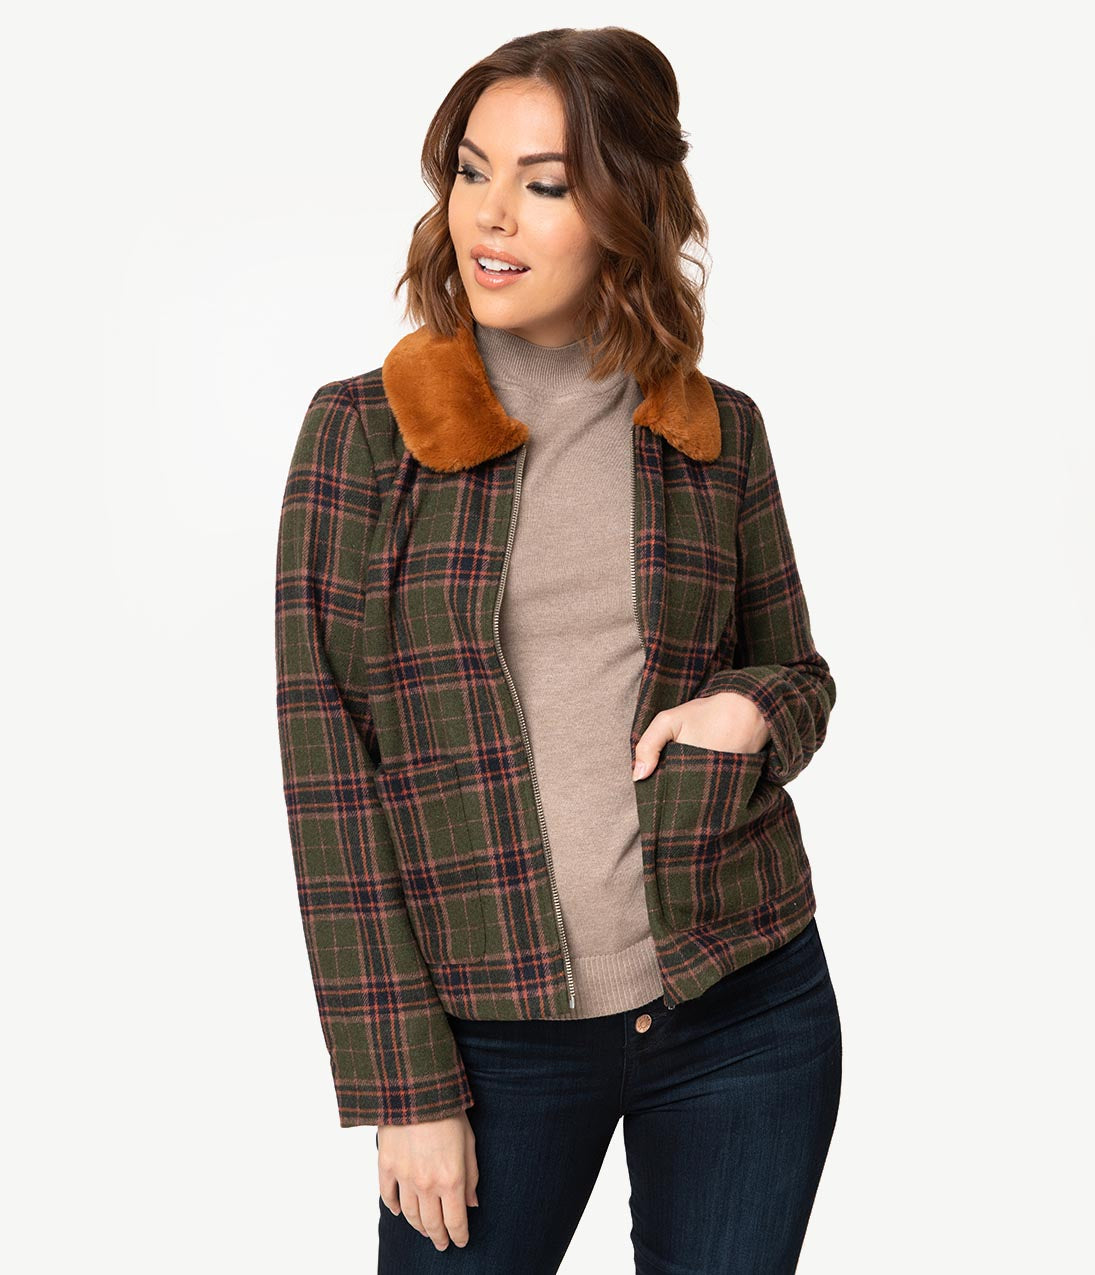 1940s Style Coats and Jackets for Sale Retro Style Olive Green Plaid  Brown Fur Collar Jacket $68.00 AT vintagedancer.com